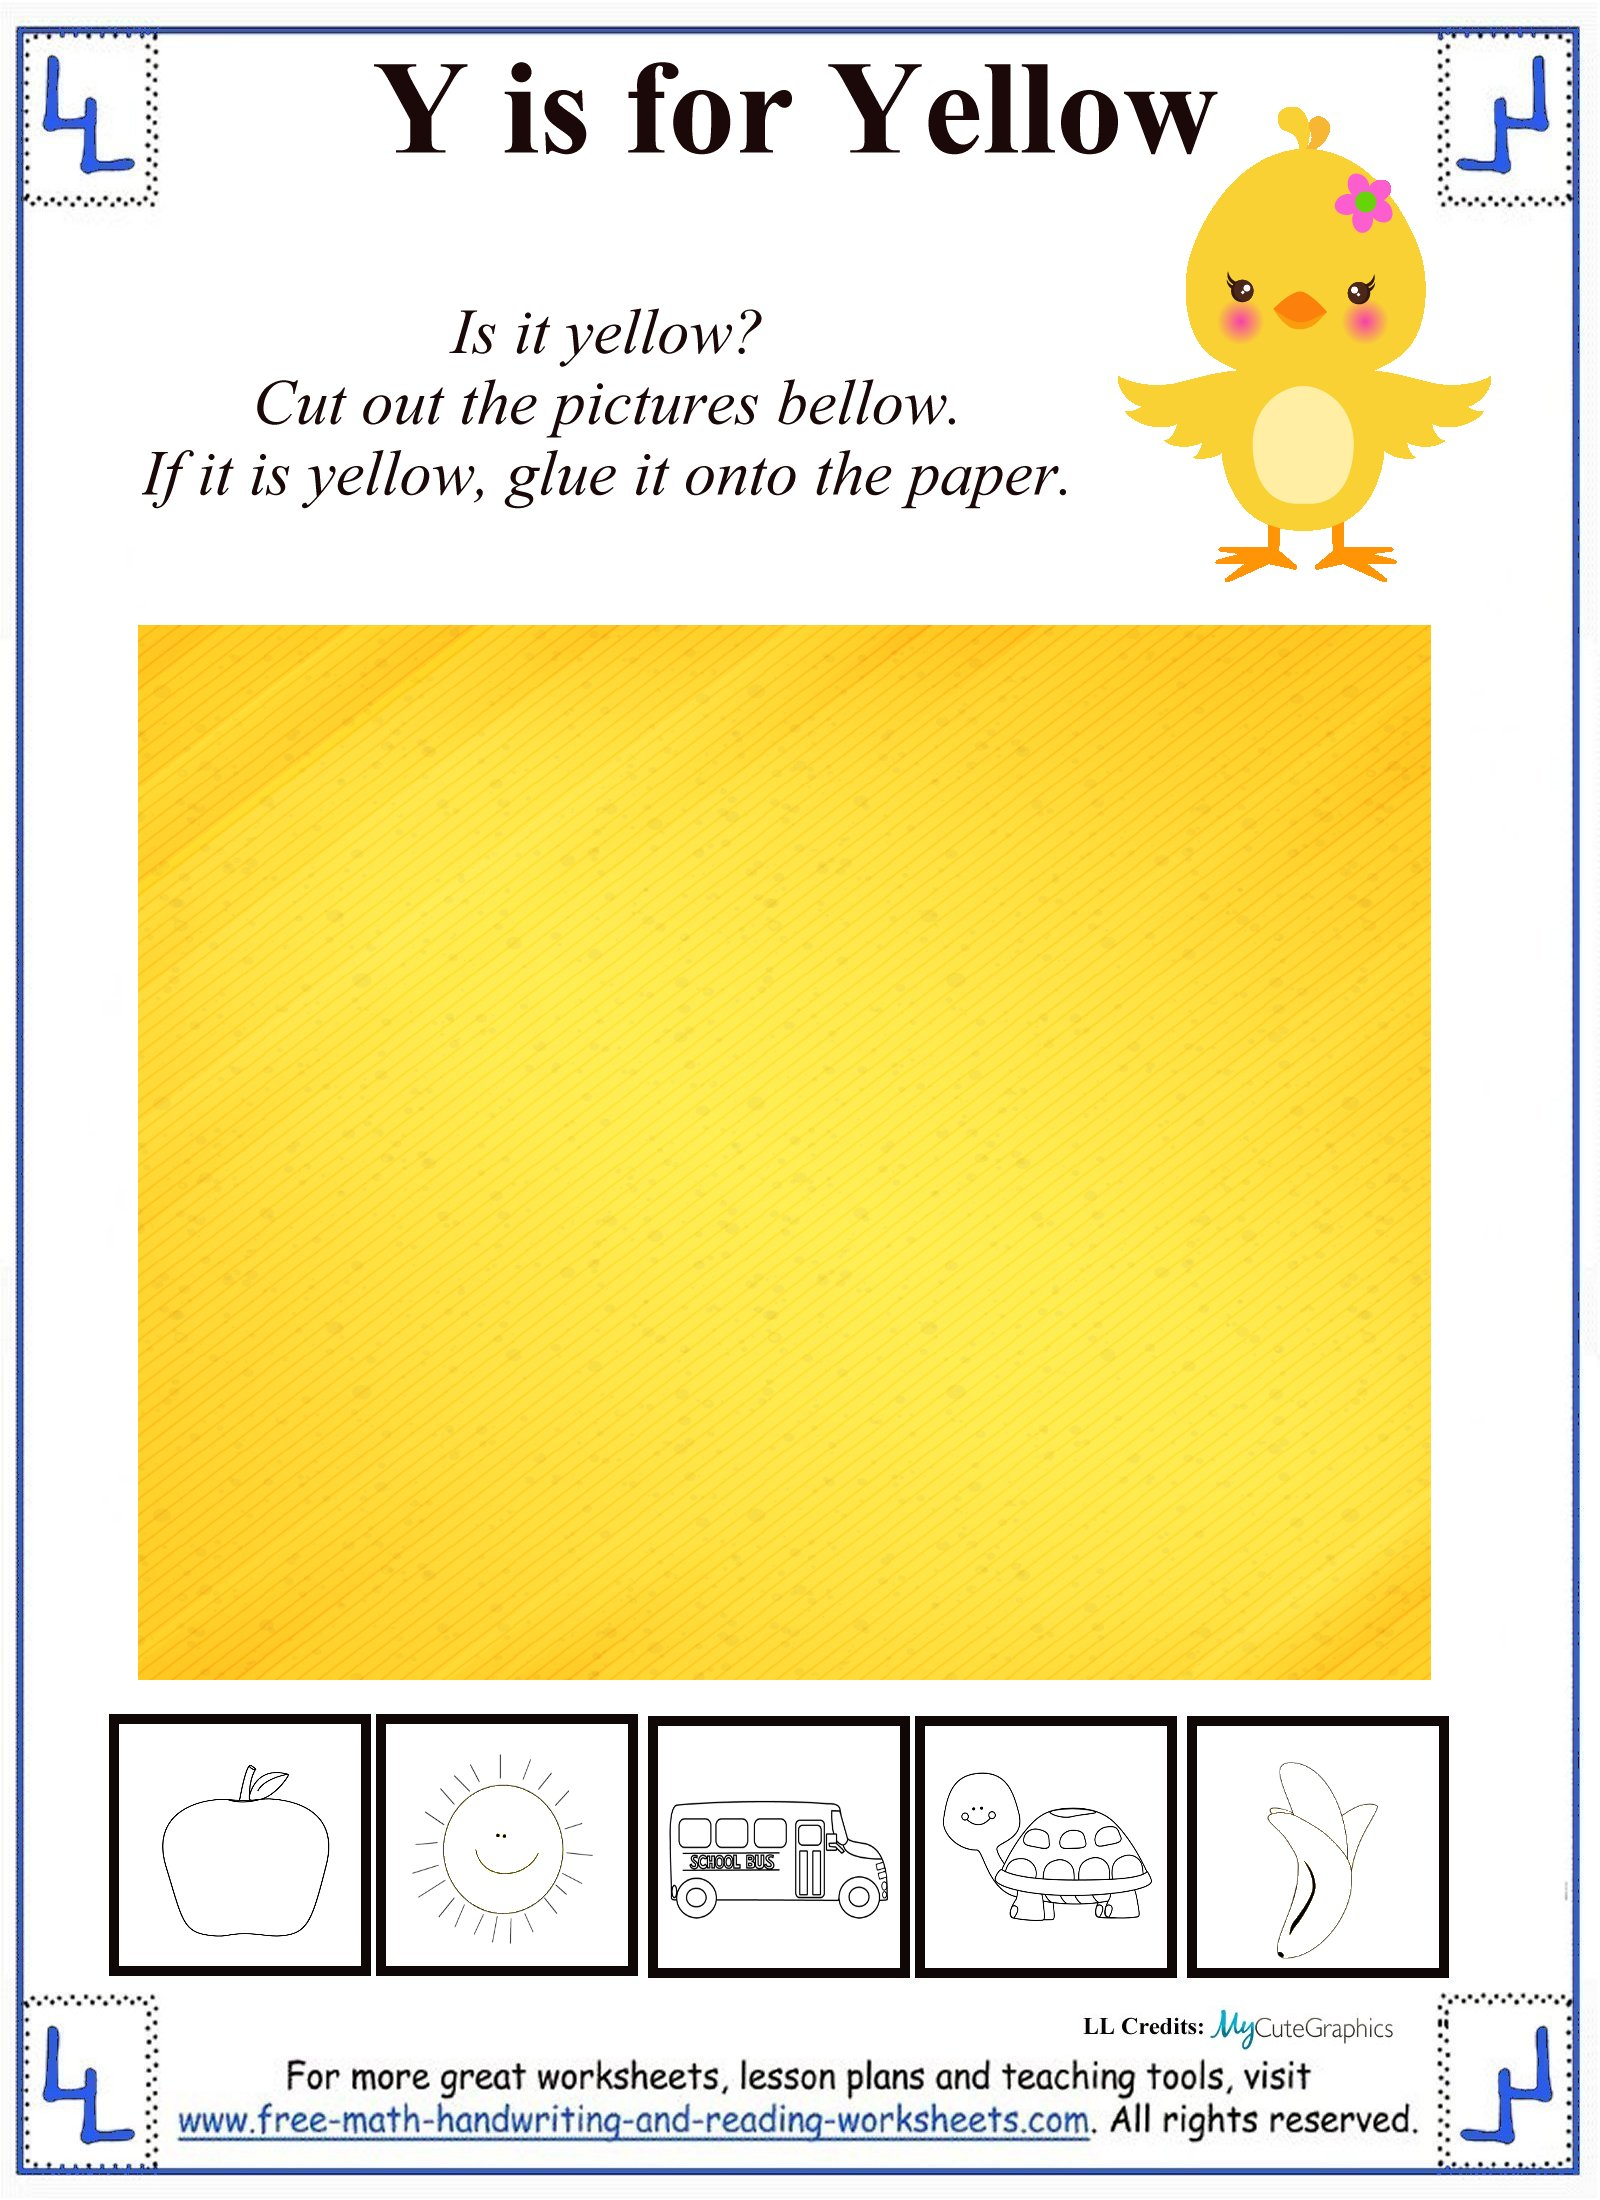 y is for yellow activity sheet